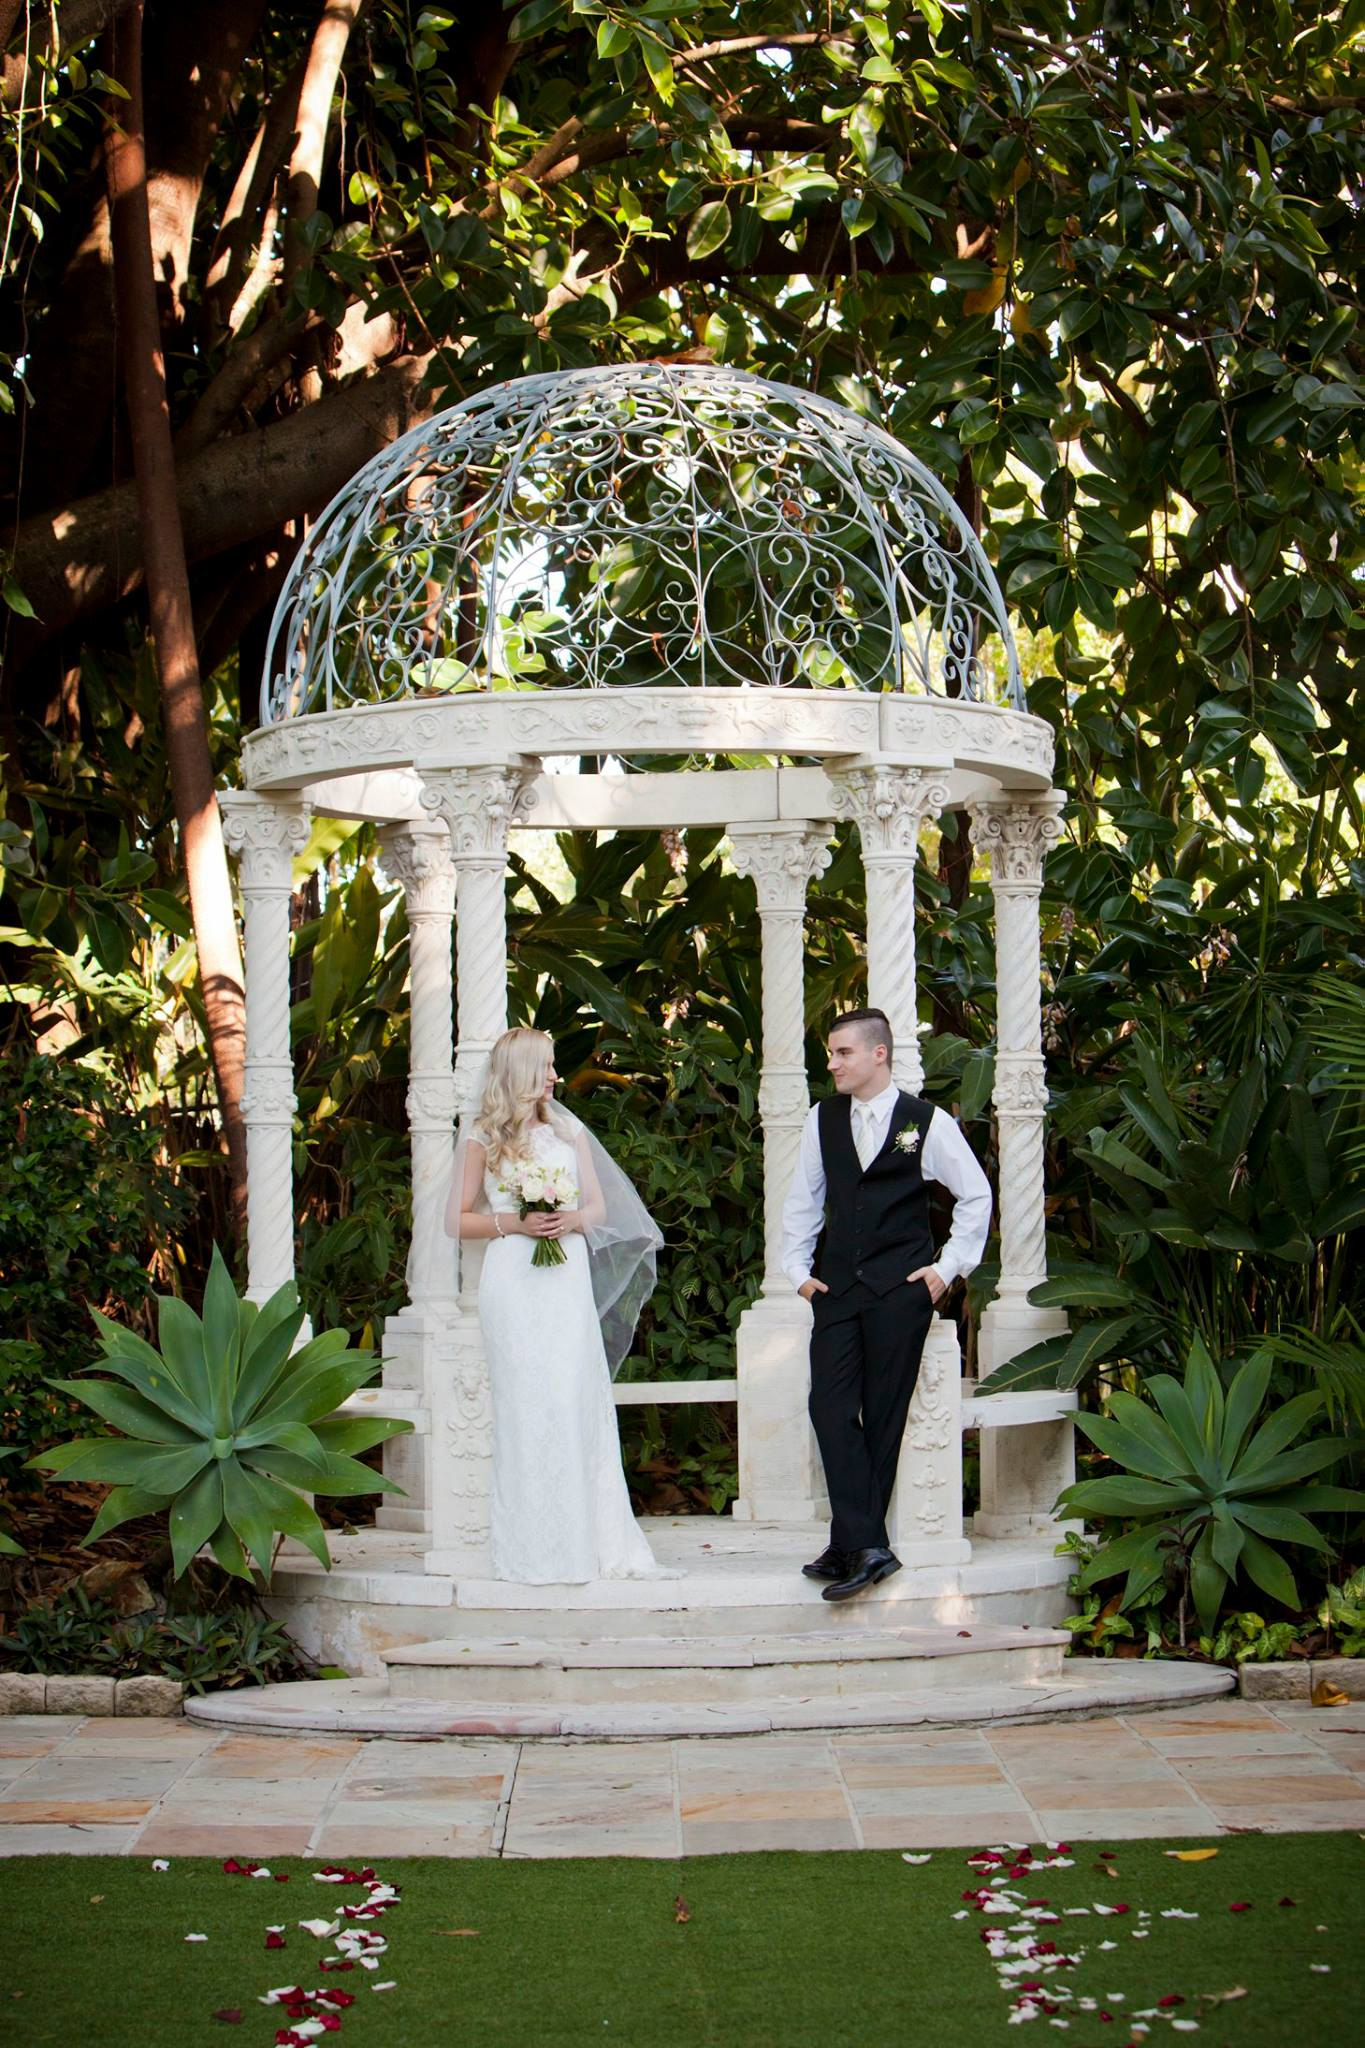 Boulevard Blog Wedding Image